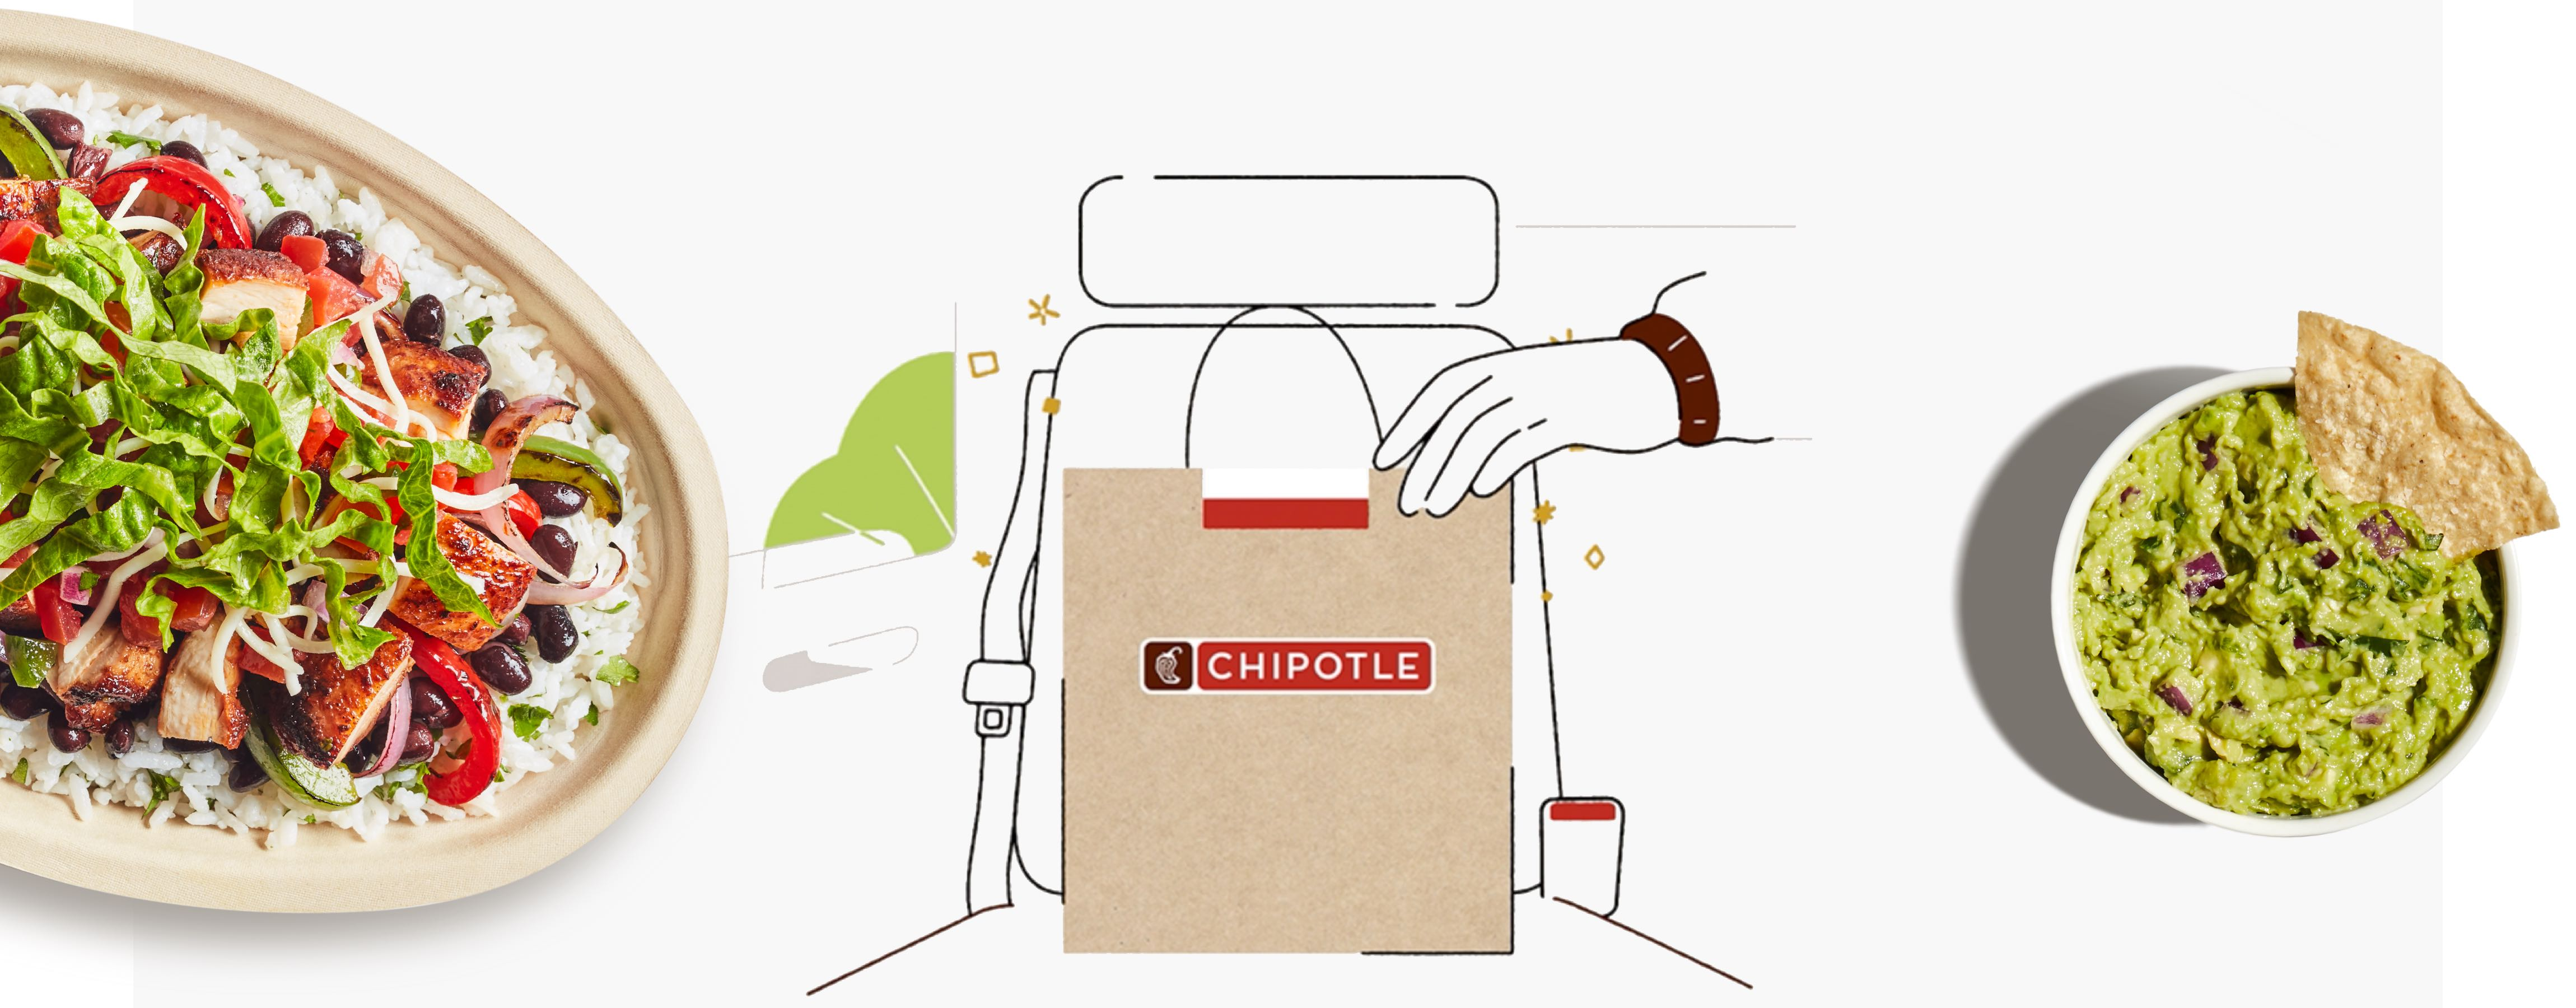 Chipotle Carside Pickup now available in the app. We'll bring it to your car for free.